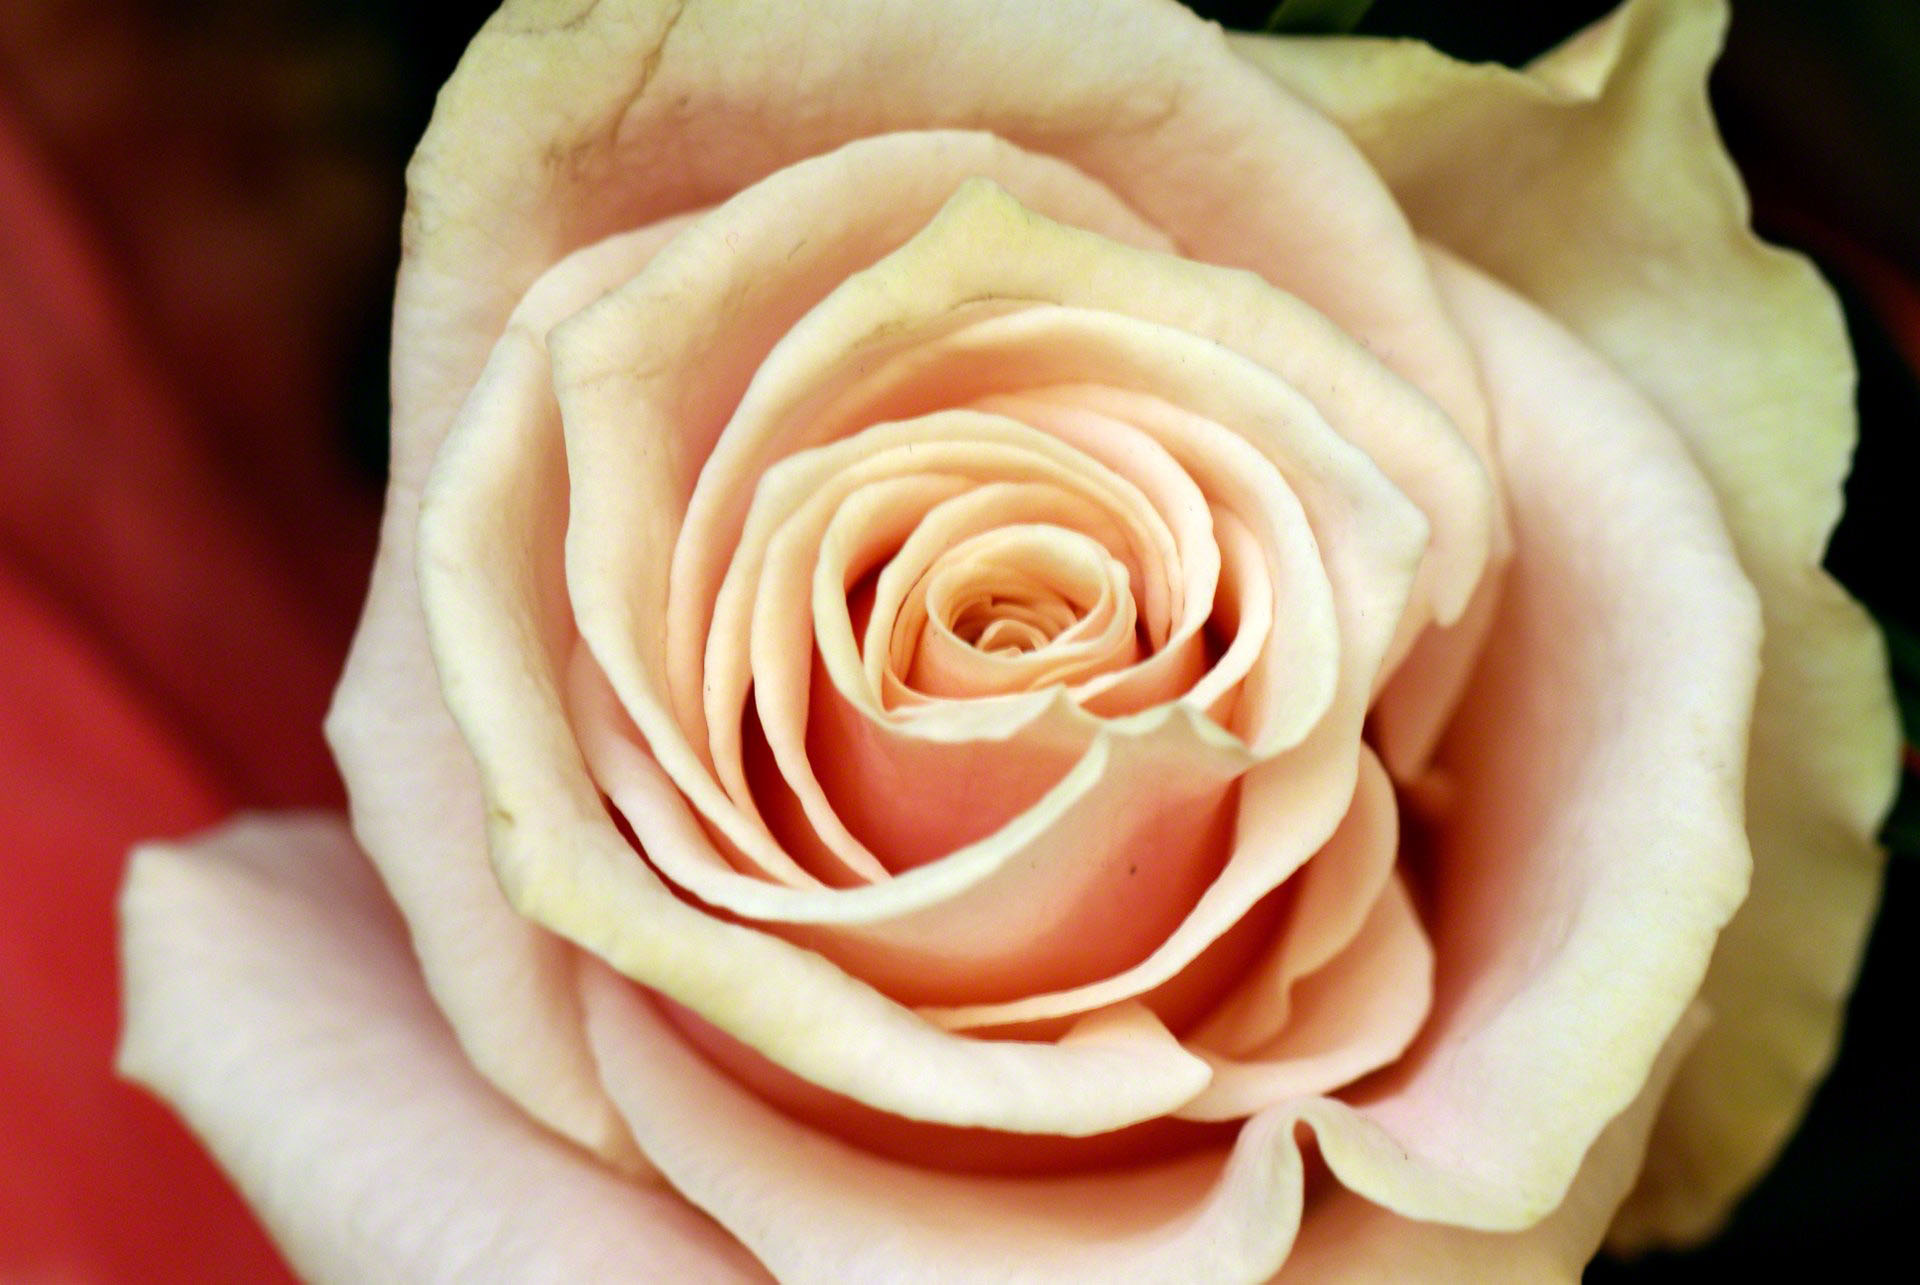 http://www.fabiovisentin.com/photography/photo/12/peach-rose-00756.jpg